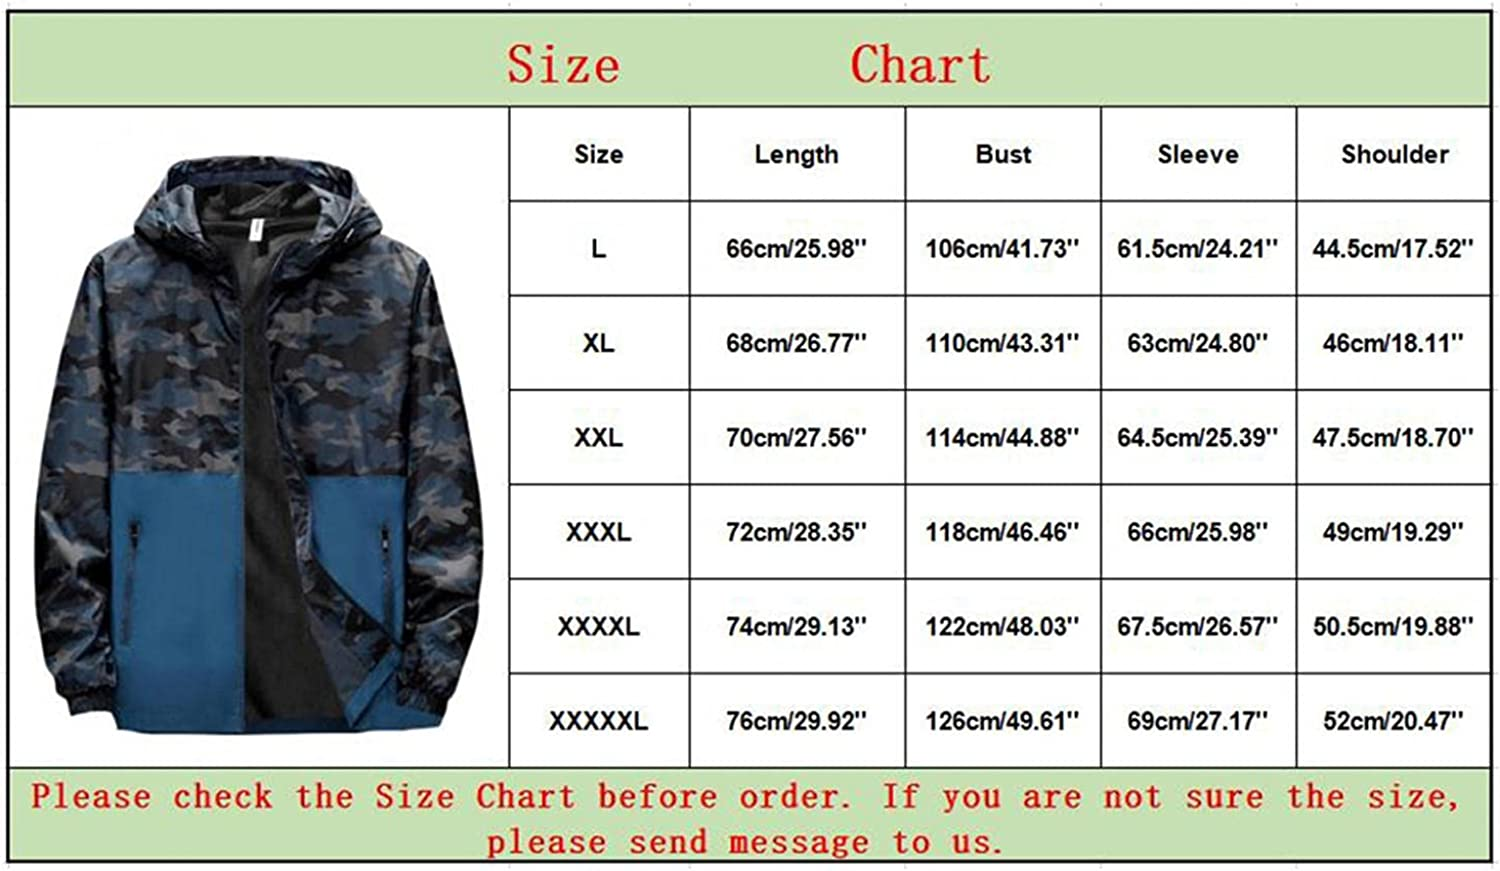 JSPOYOU Mens Raincoats Waterproof With Hood Lightweight Packable Outdoor Rain Jackets Breathable Trench Coats